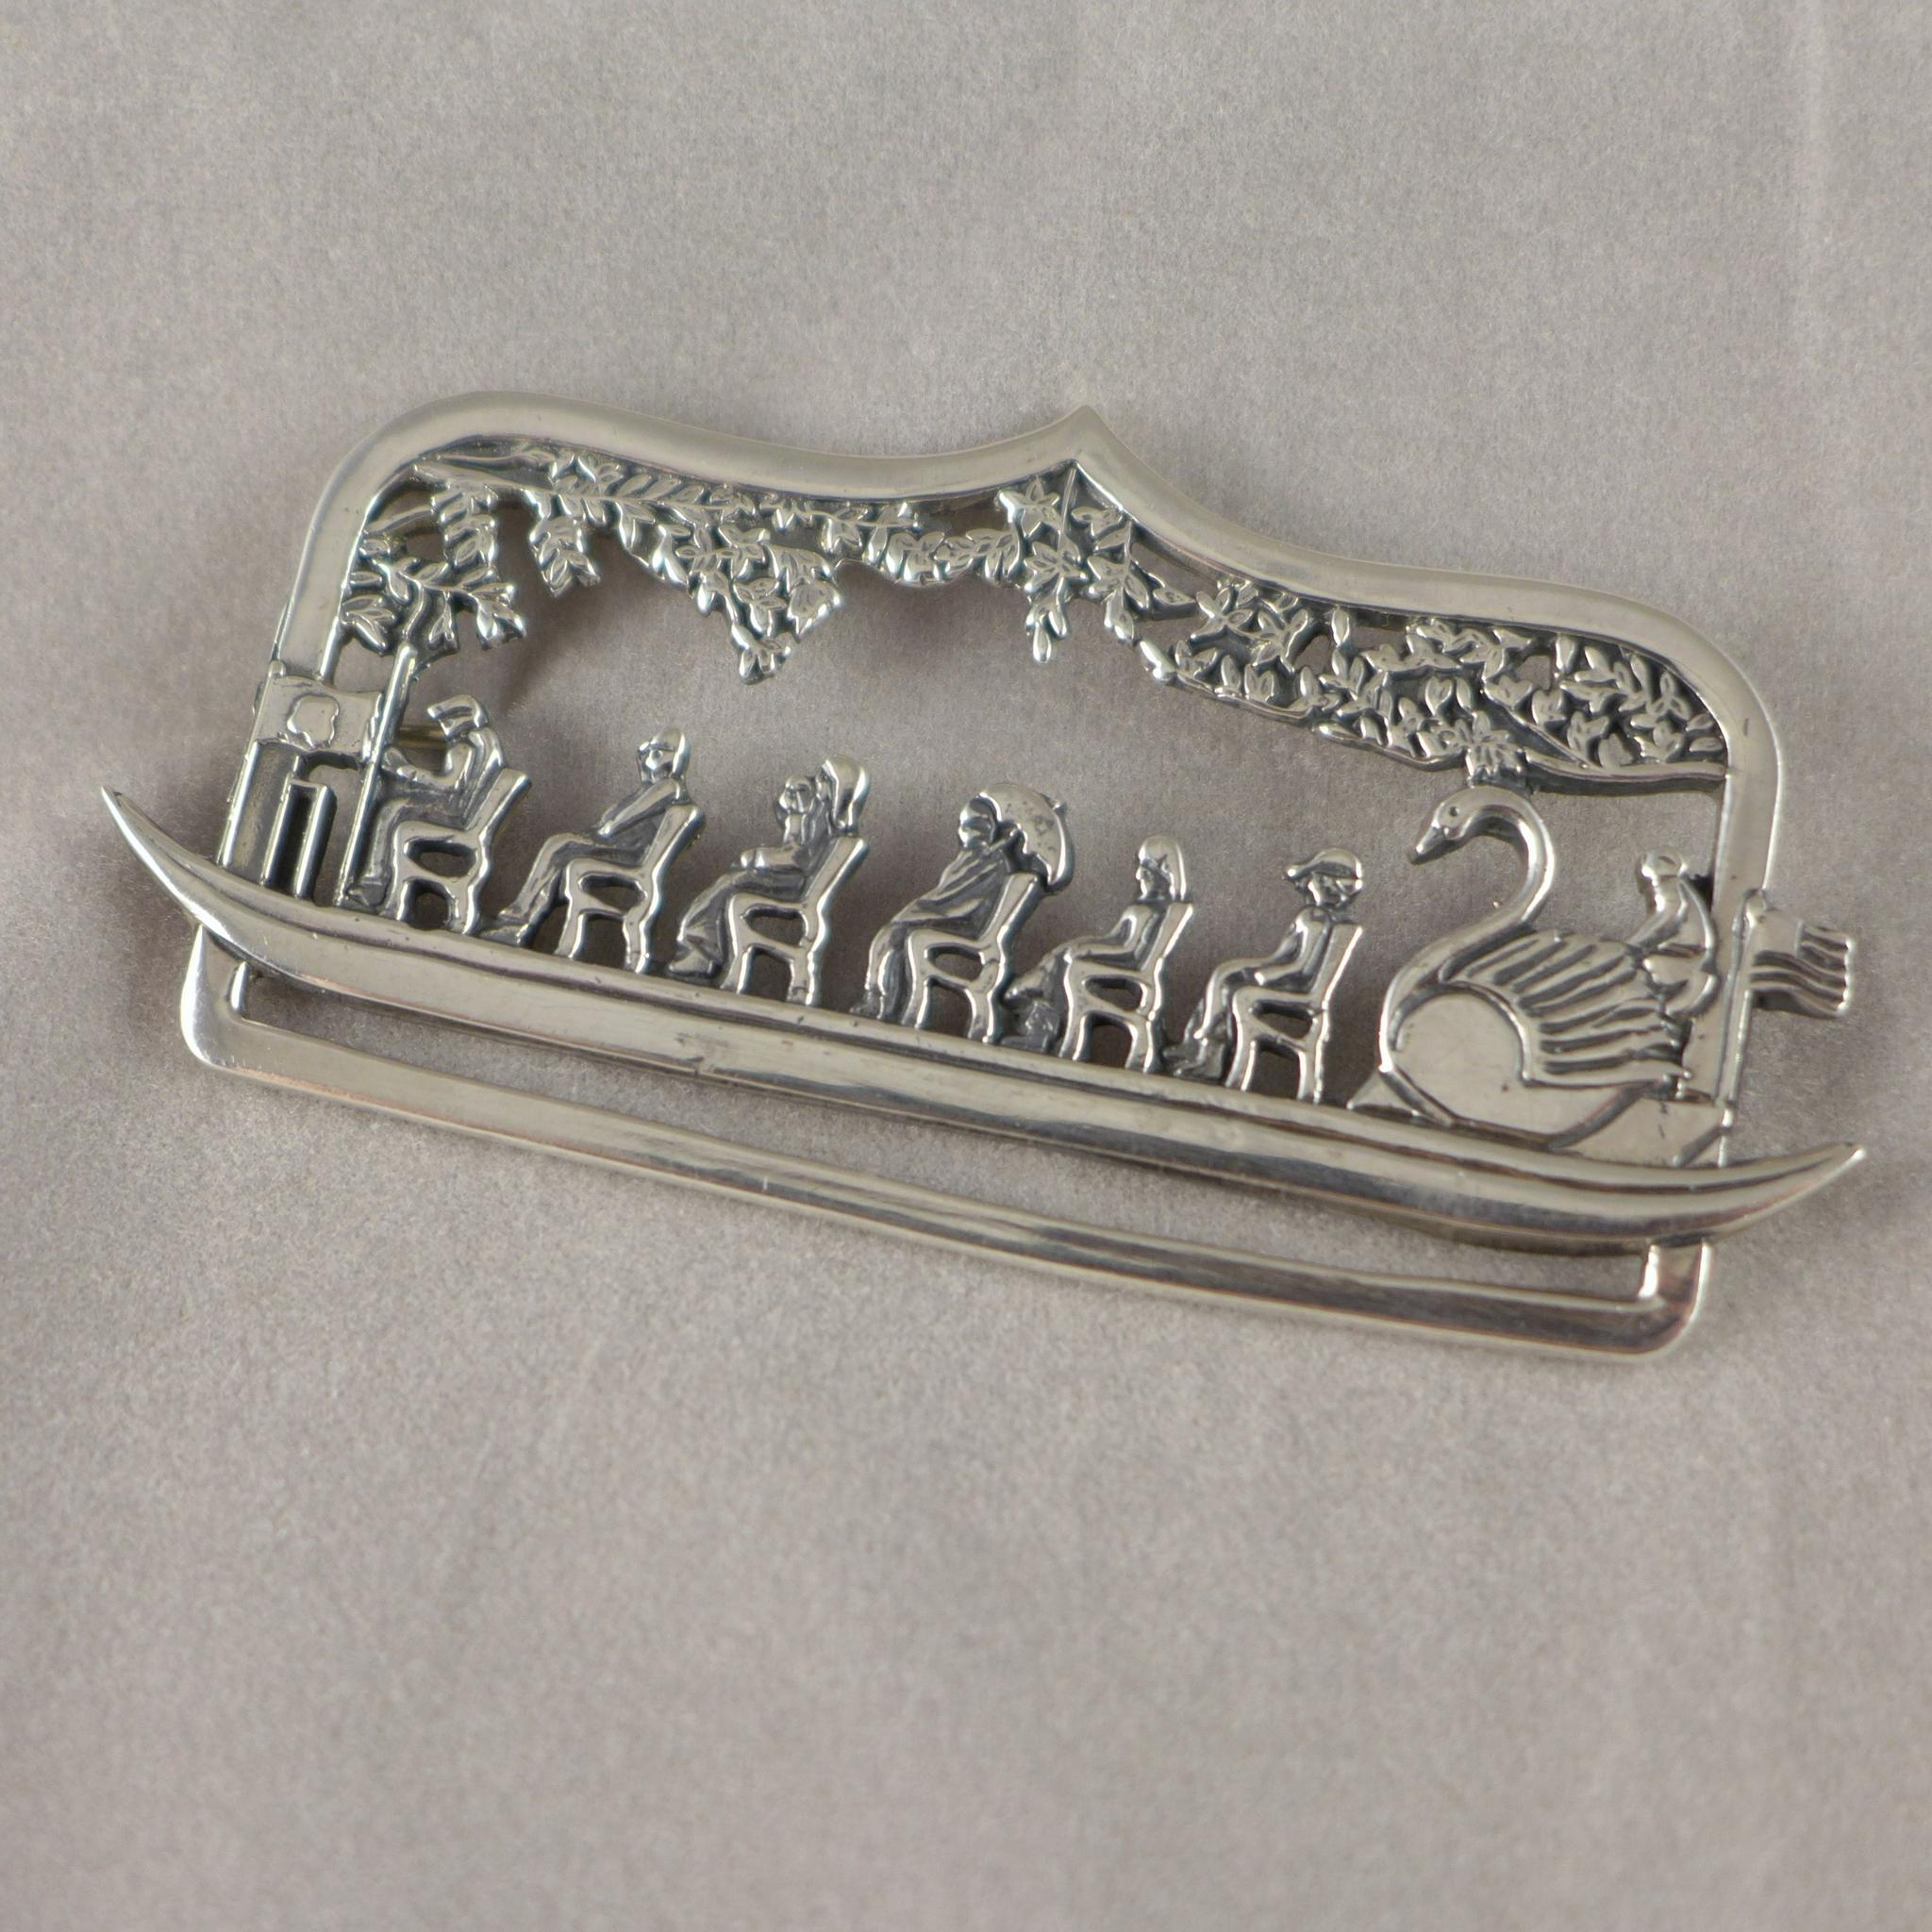 Vintage Sterling Silver Swan Boat Brooch / Pin - Boston Public Gardens